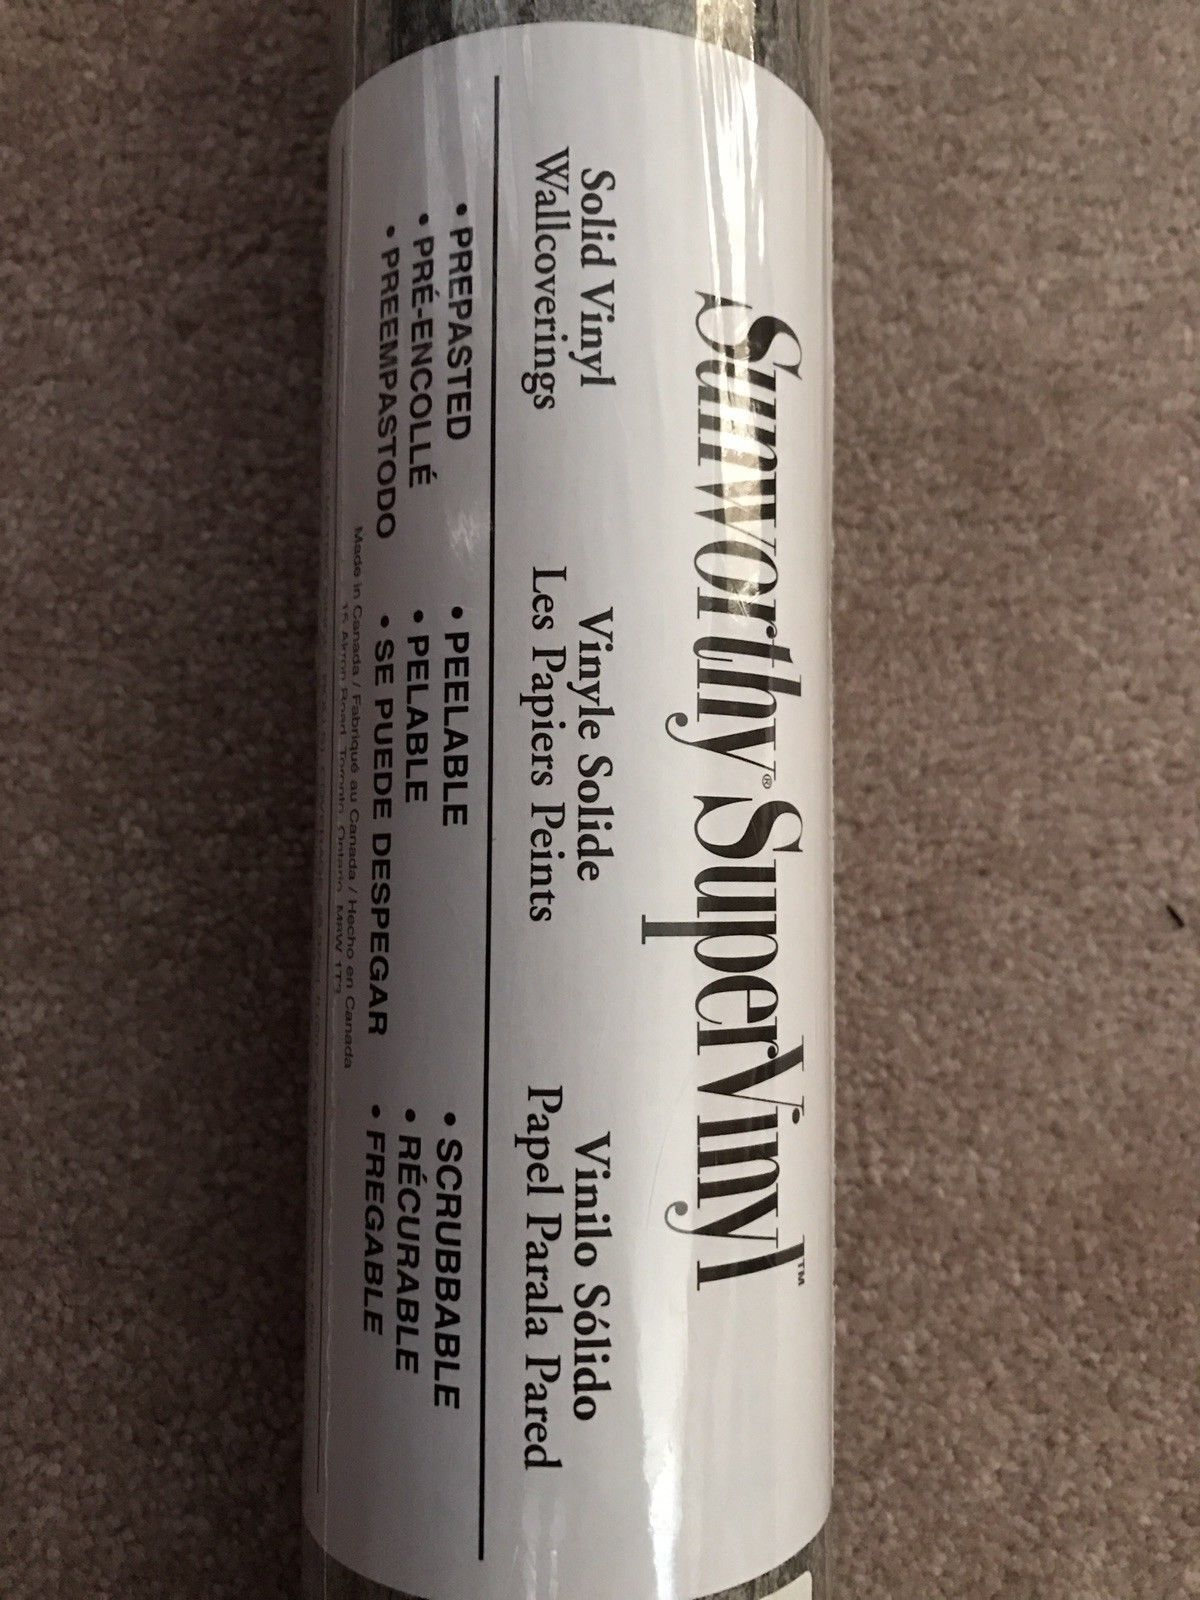 Sunworthy Supervinyl Wallpaper Custom Prepasted 2 Bolts Coverage 112.74 Sq Ft